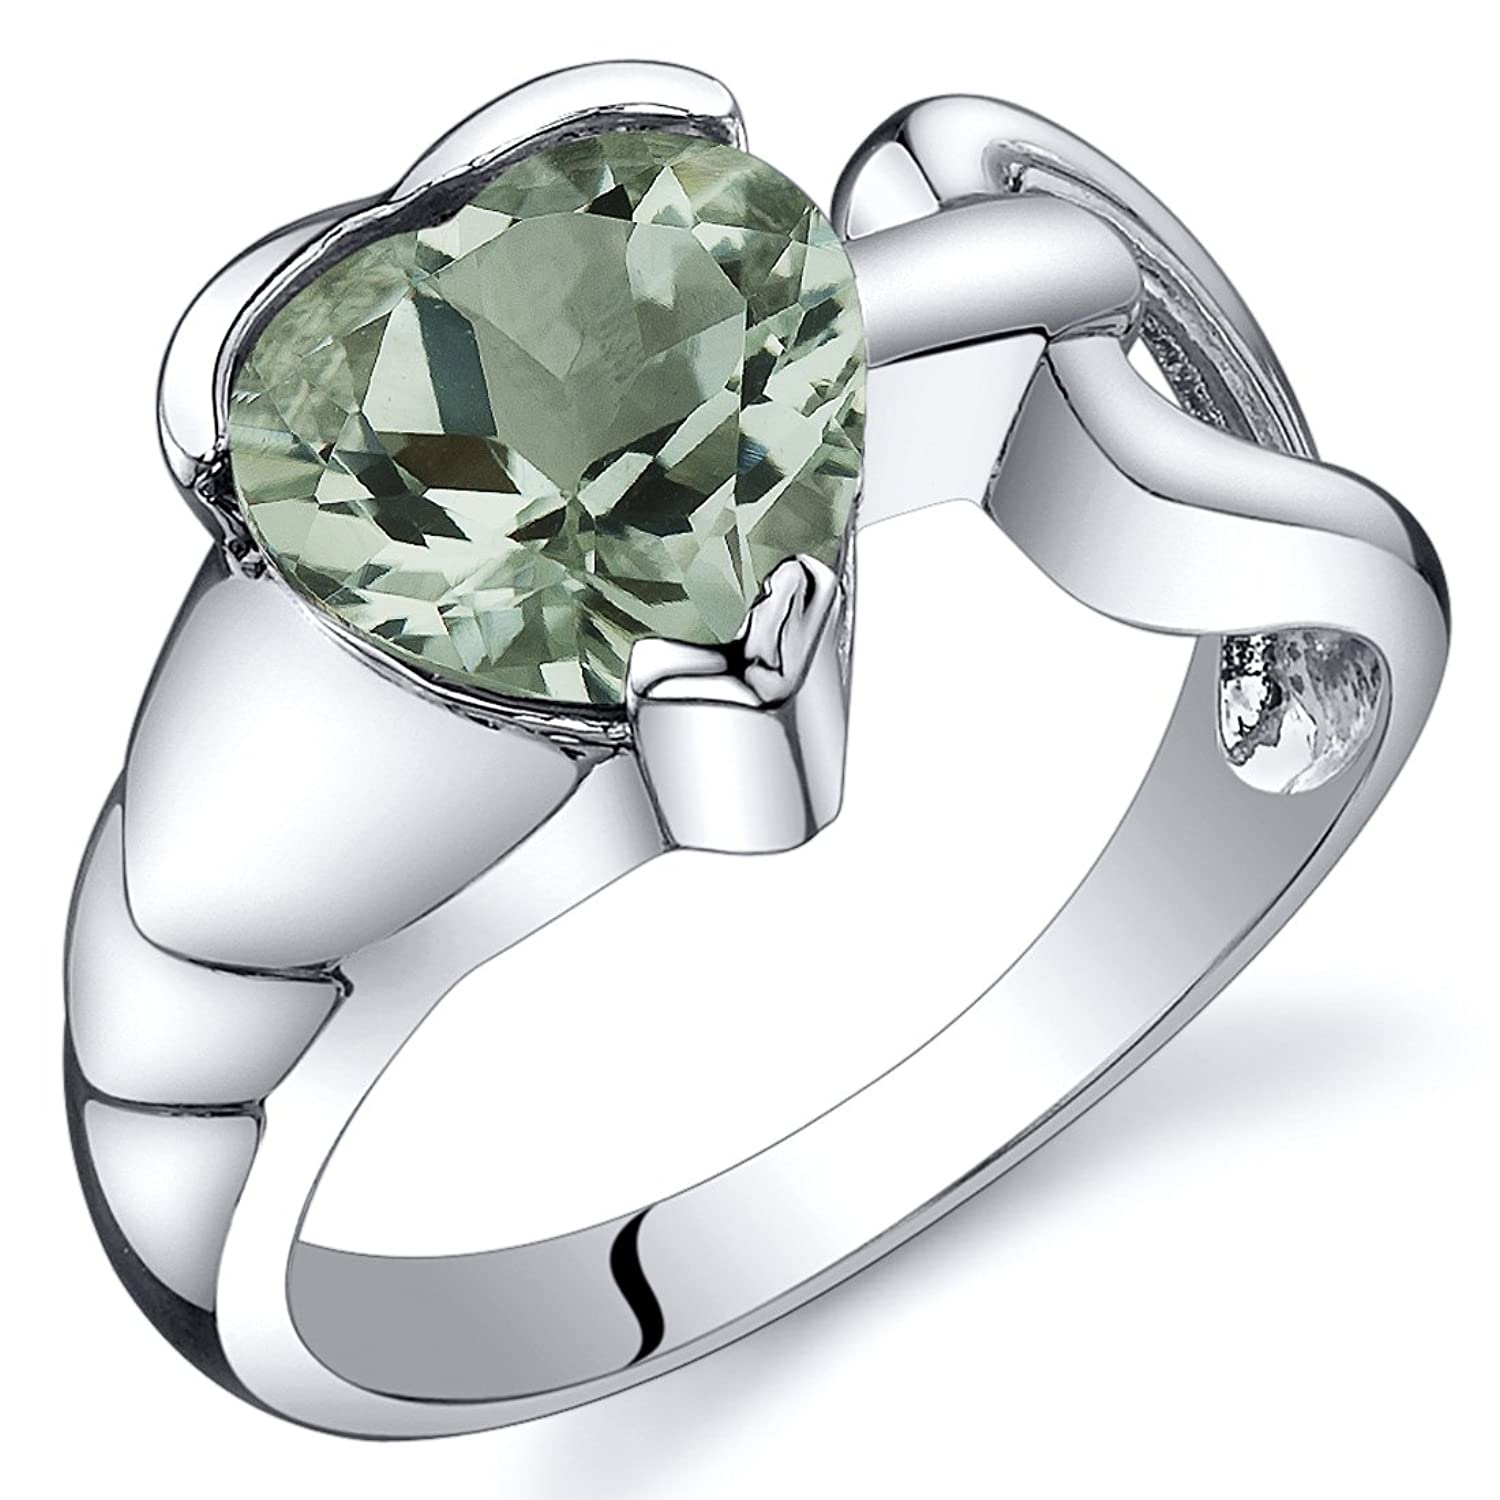 Green Amethyst Love Knot Ring Sterling Silver Rhodium Nickel Finish 1.50 Carats Sizes 5 to 9